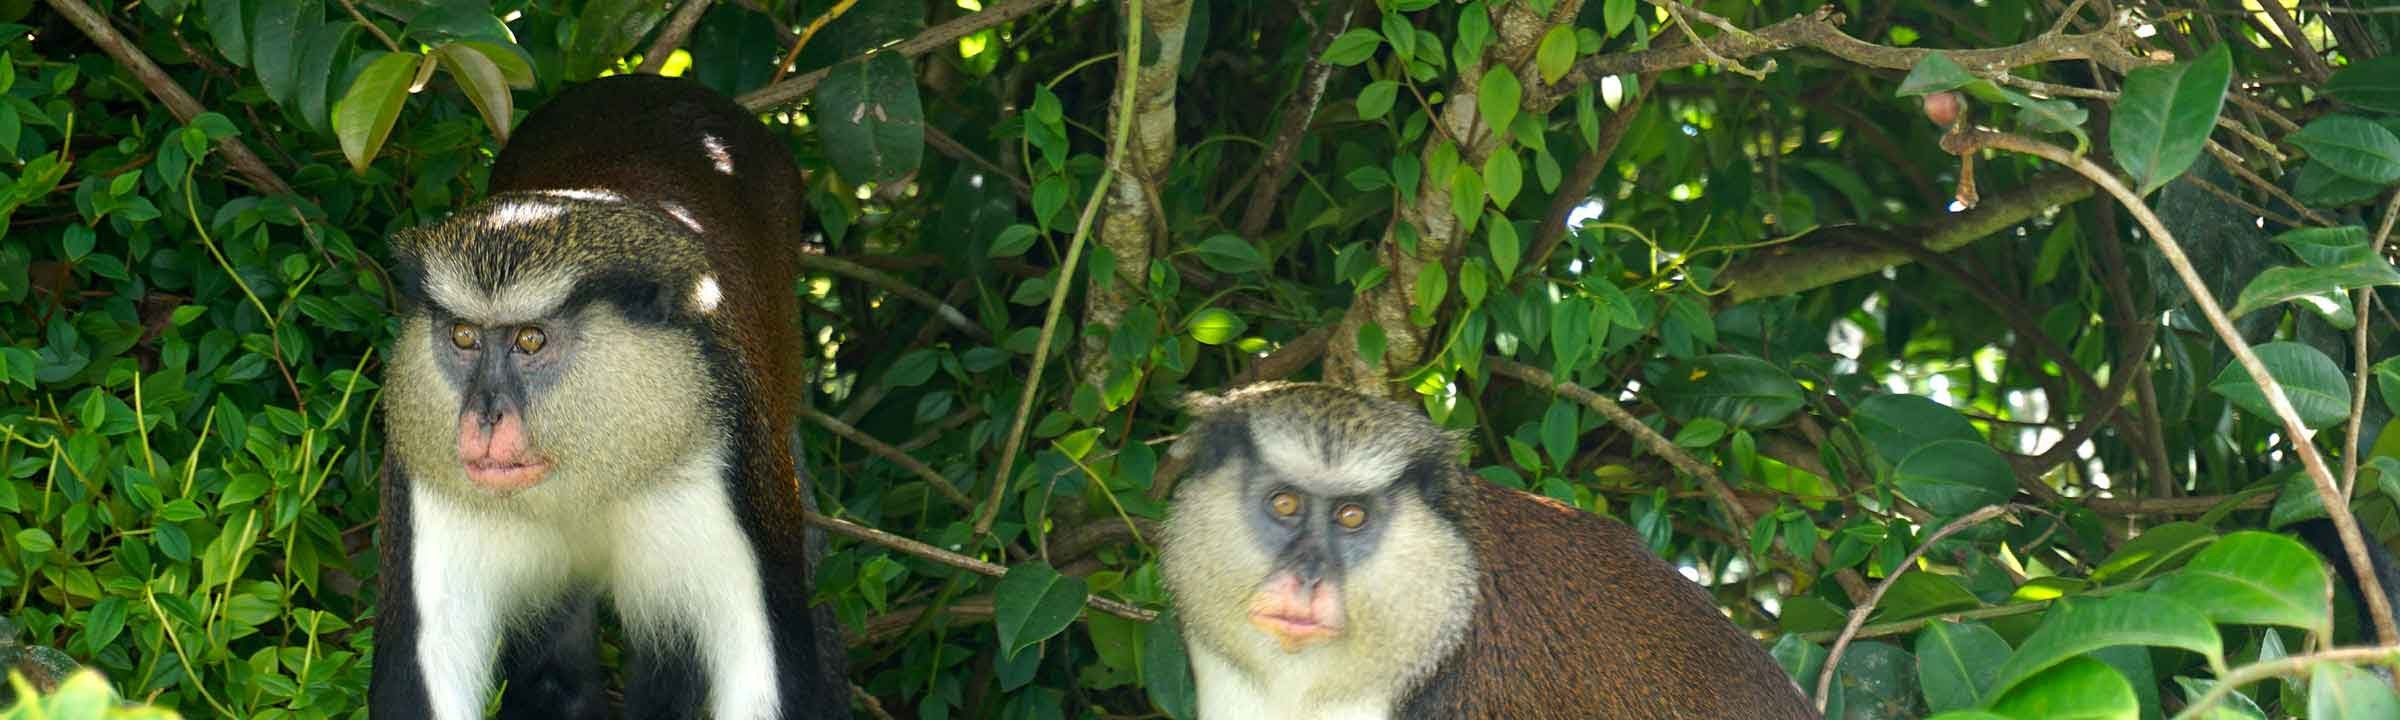 Grenada Featured Image - Mona Monkeys